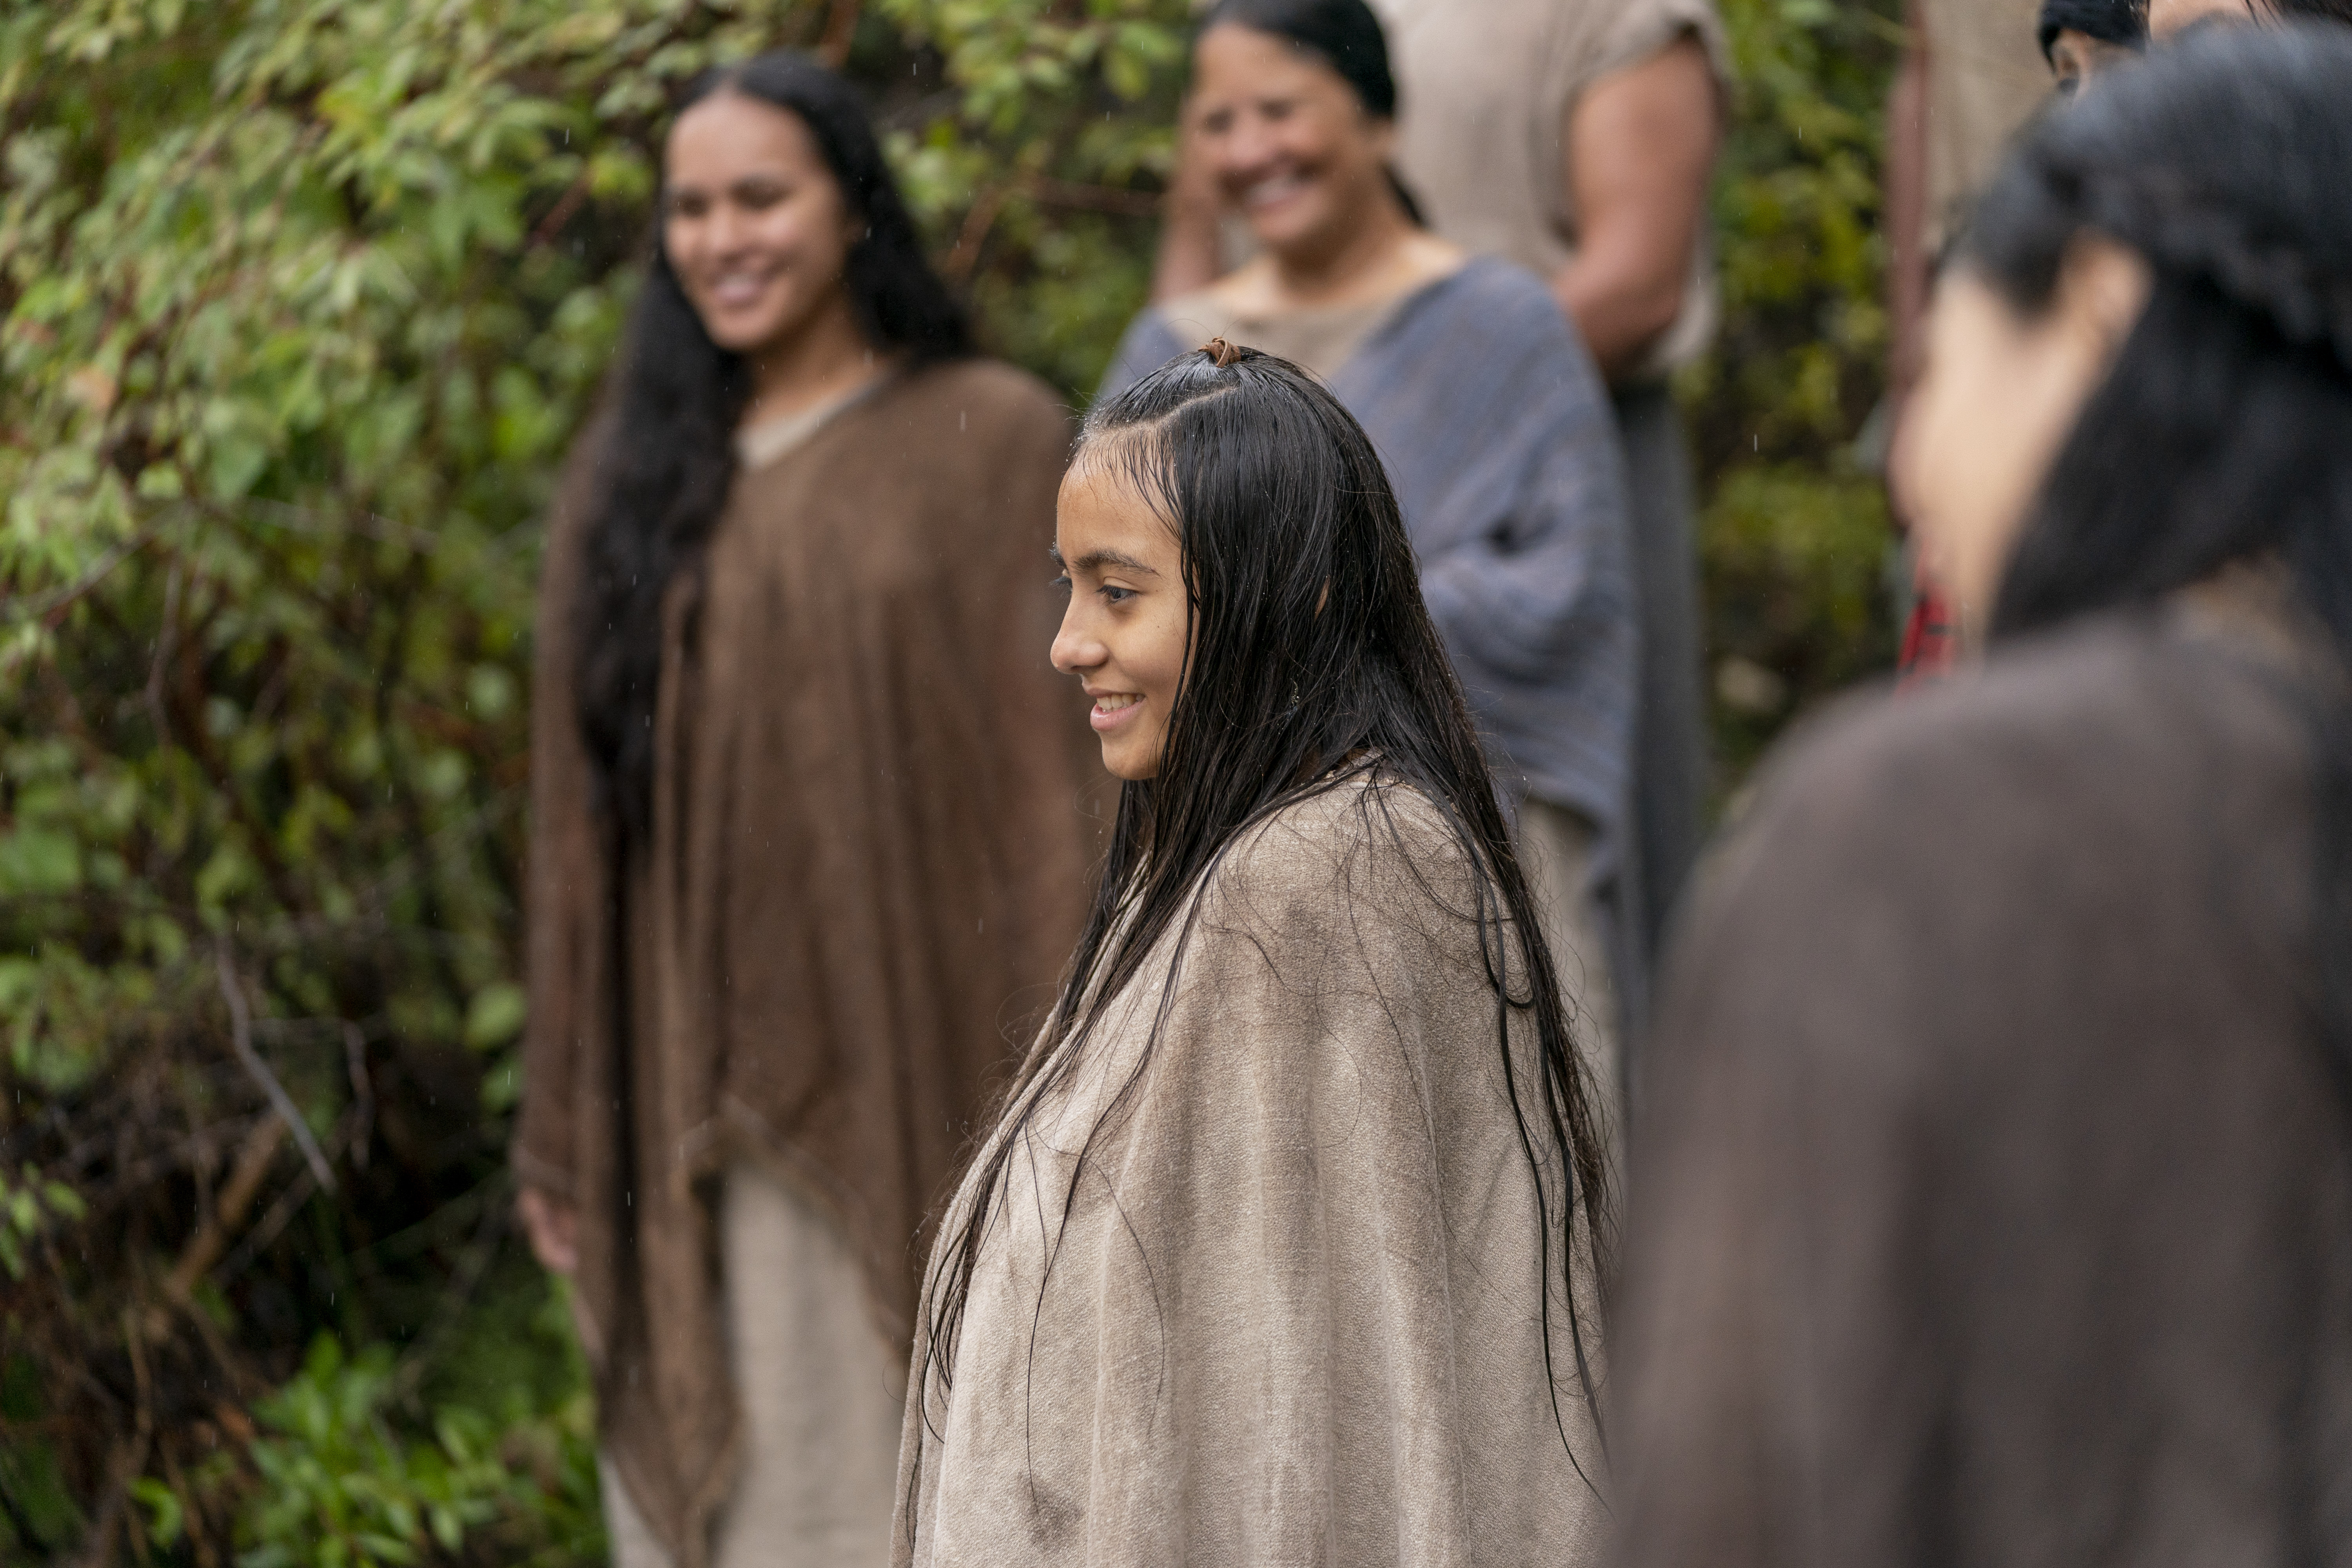 A group of people from the land of Zarahemla gather together to be baptized. They watch as Alma the Younger baptizes more of their friends and family.